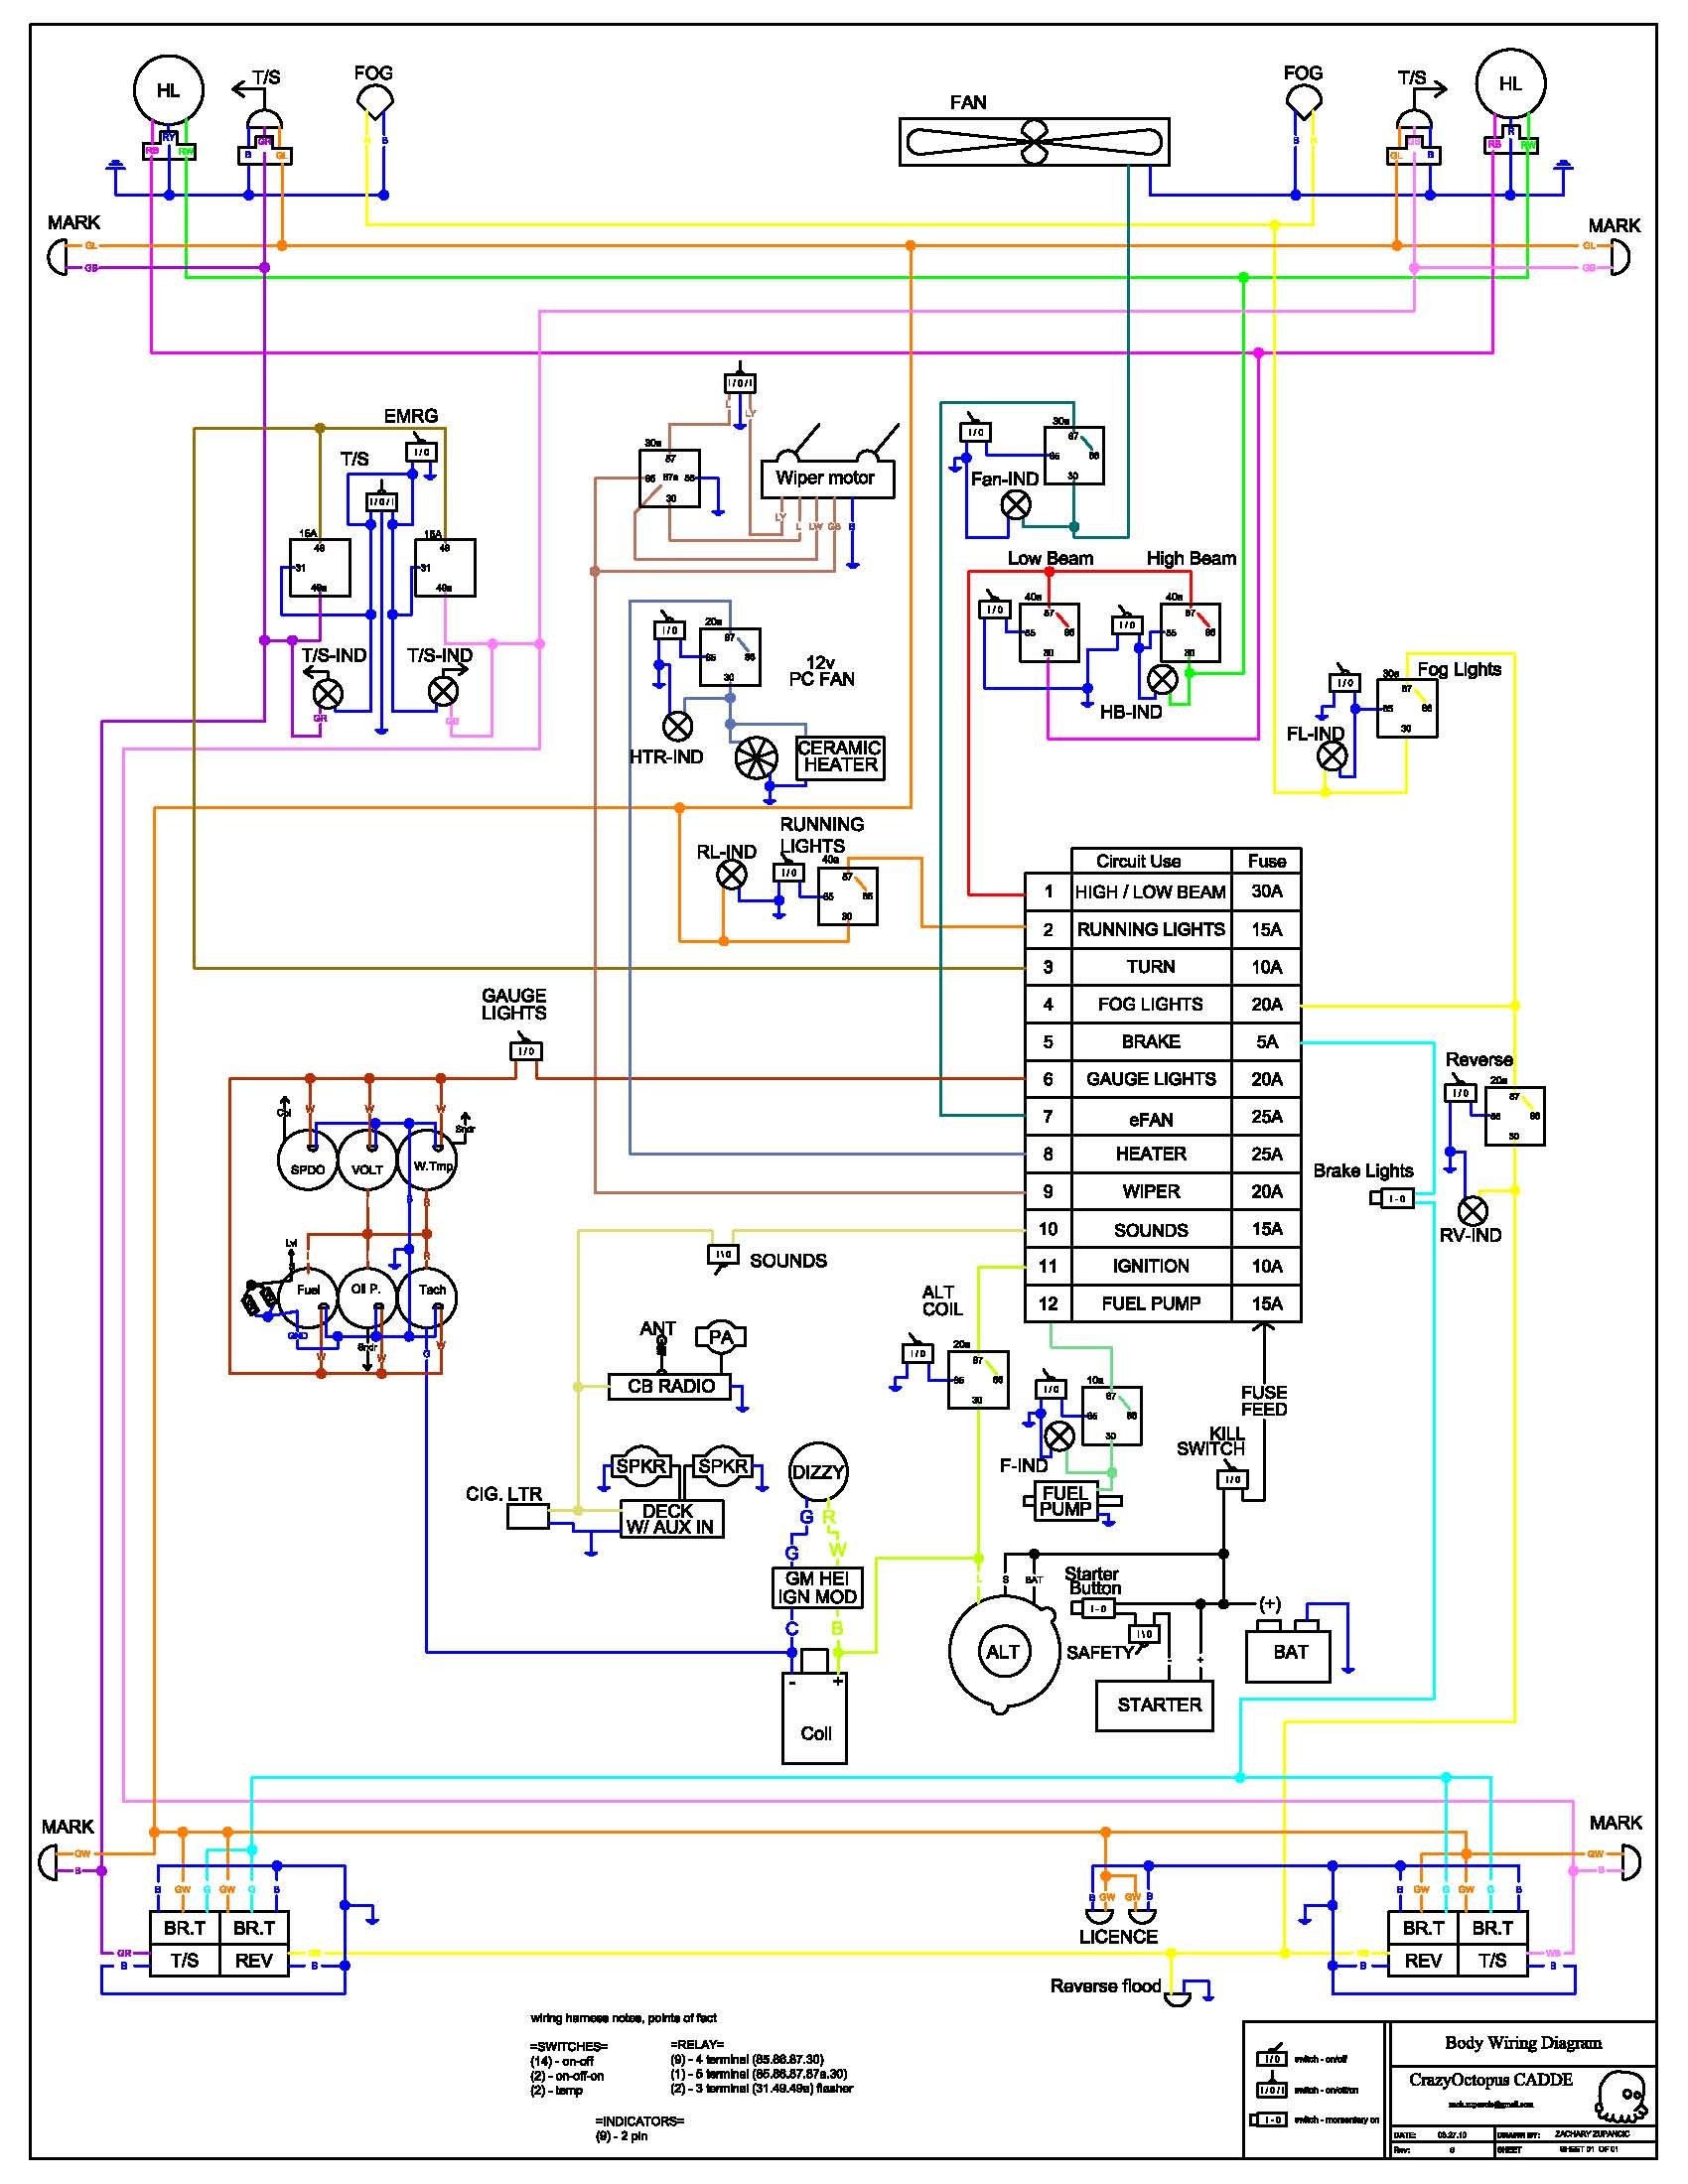 Wiring Diagram Complete Re